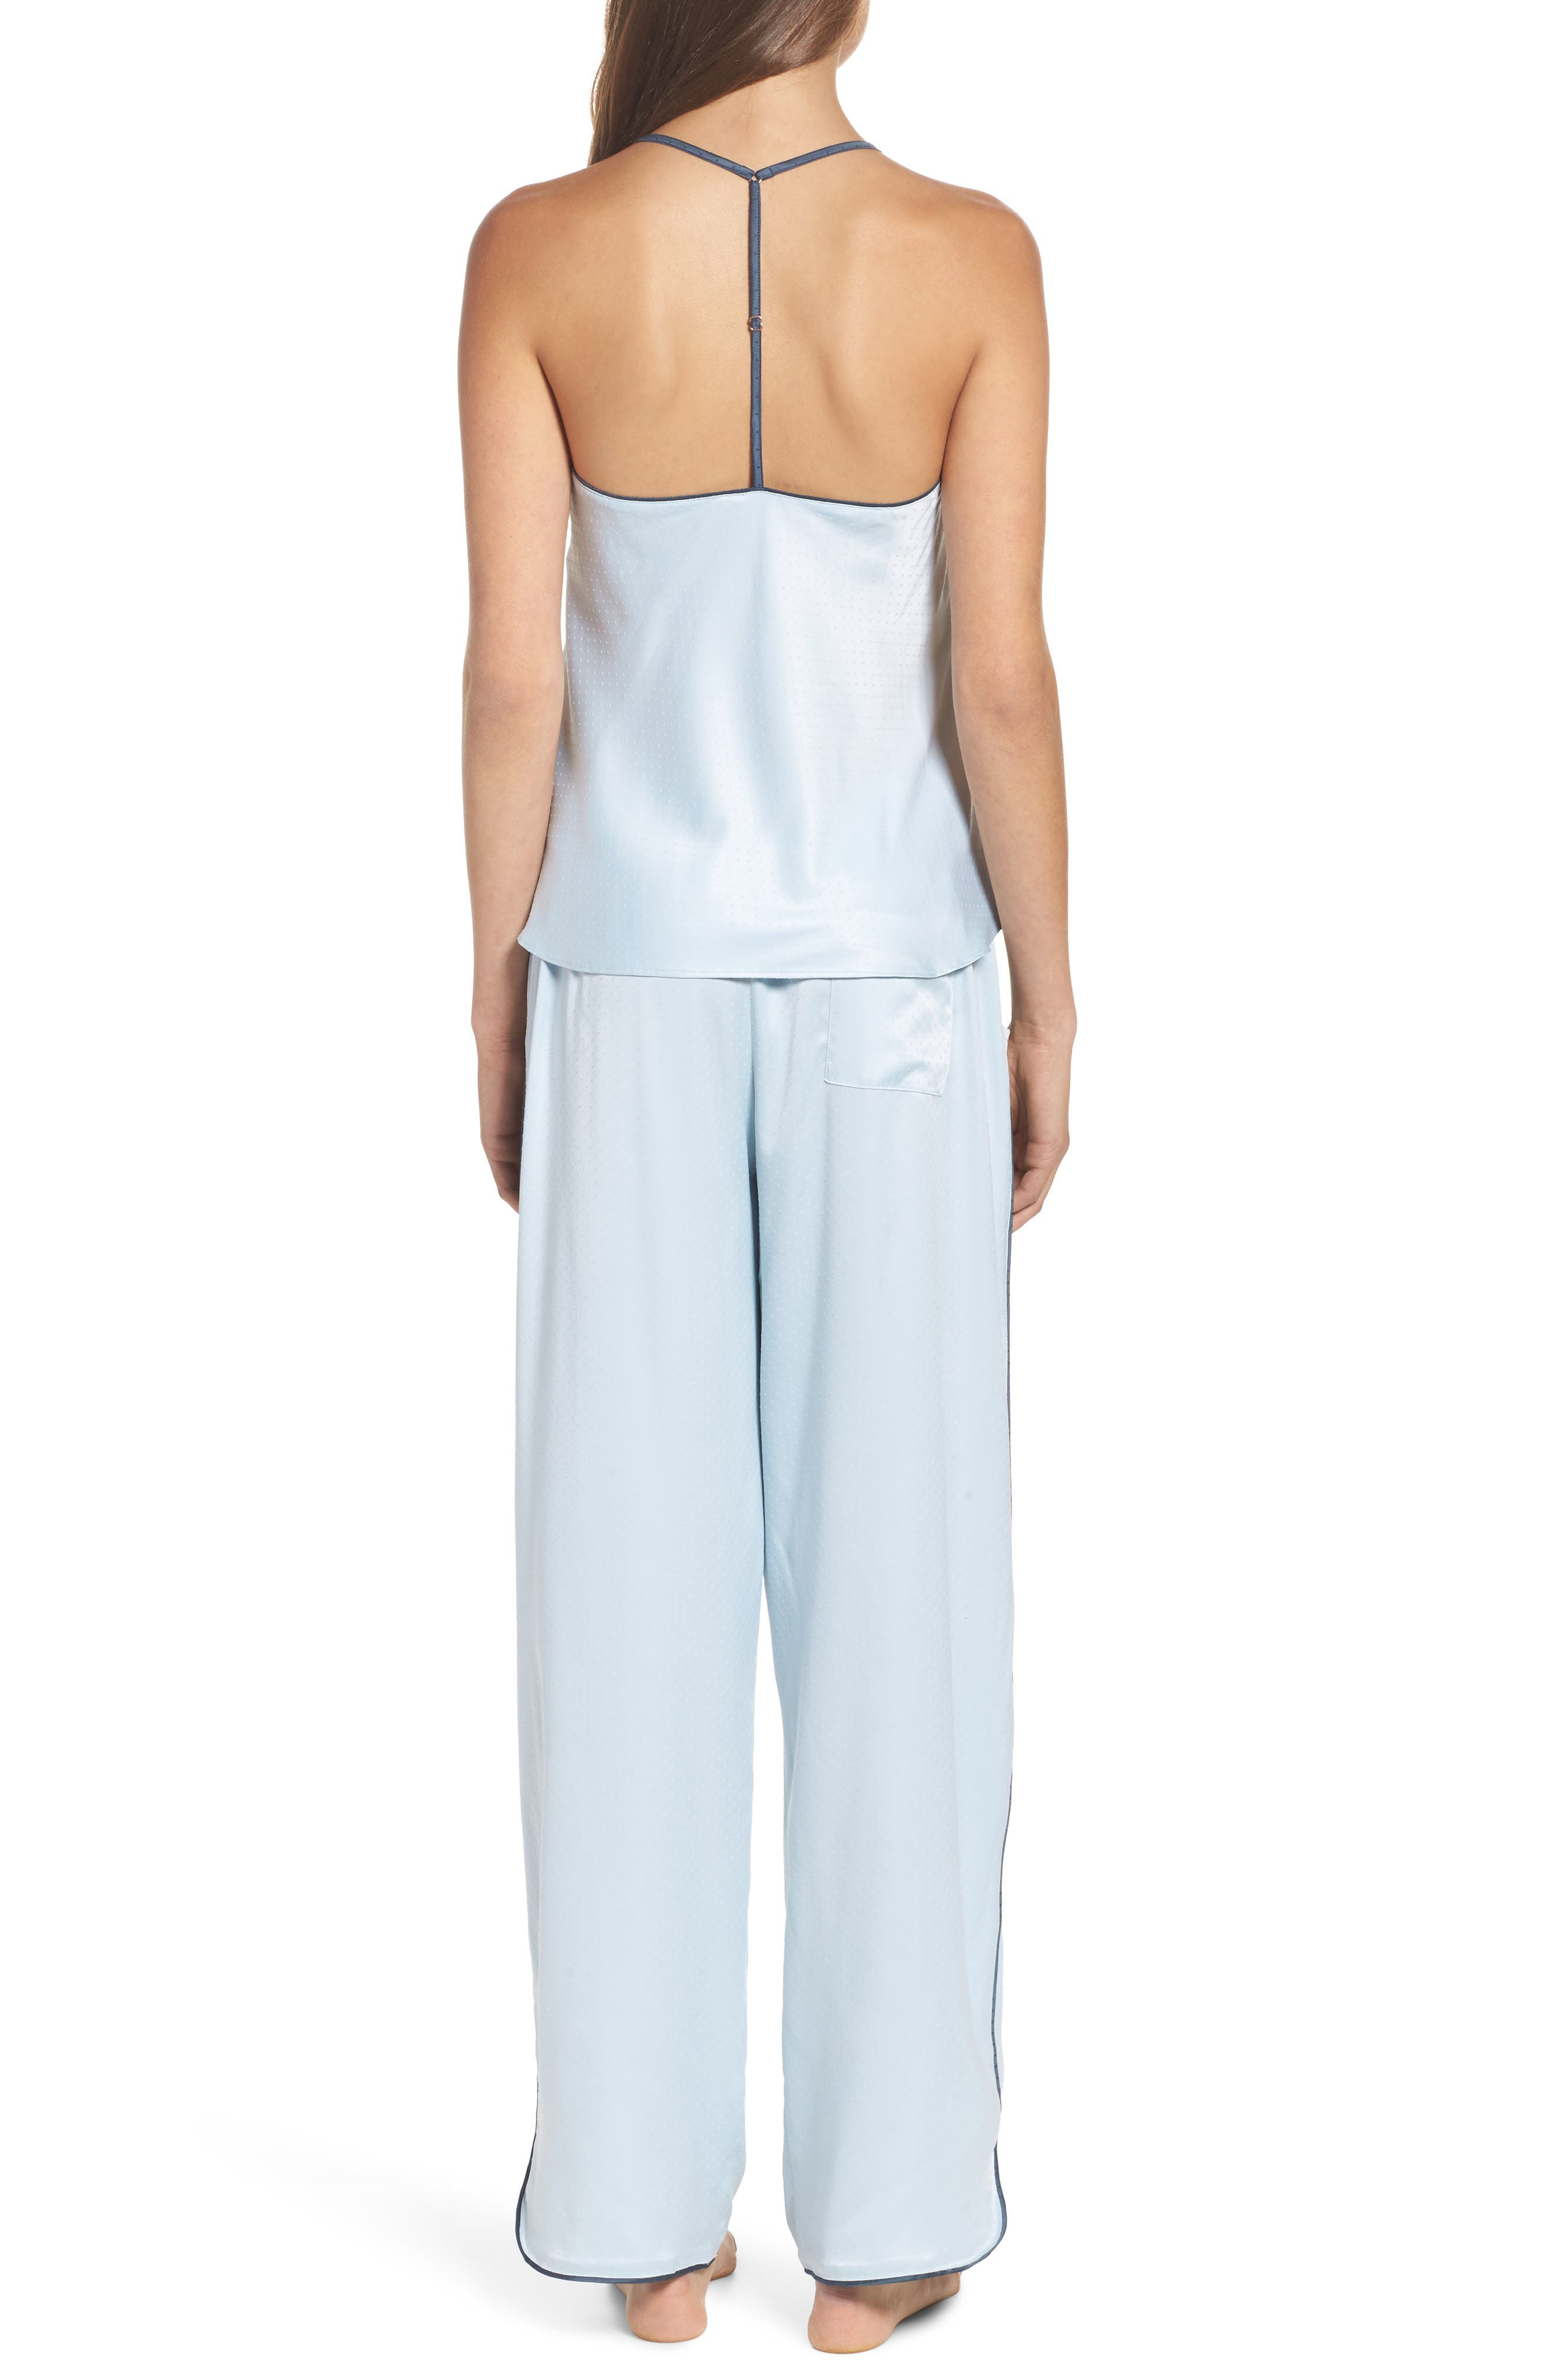 Chelsea27 Late Nights Satin Lounge Pants,                             Alternate thumbnail 5, color,                             Blue Drift